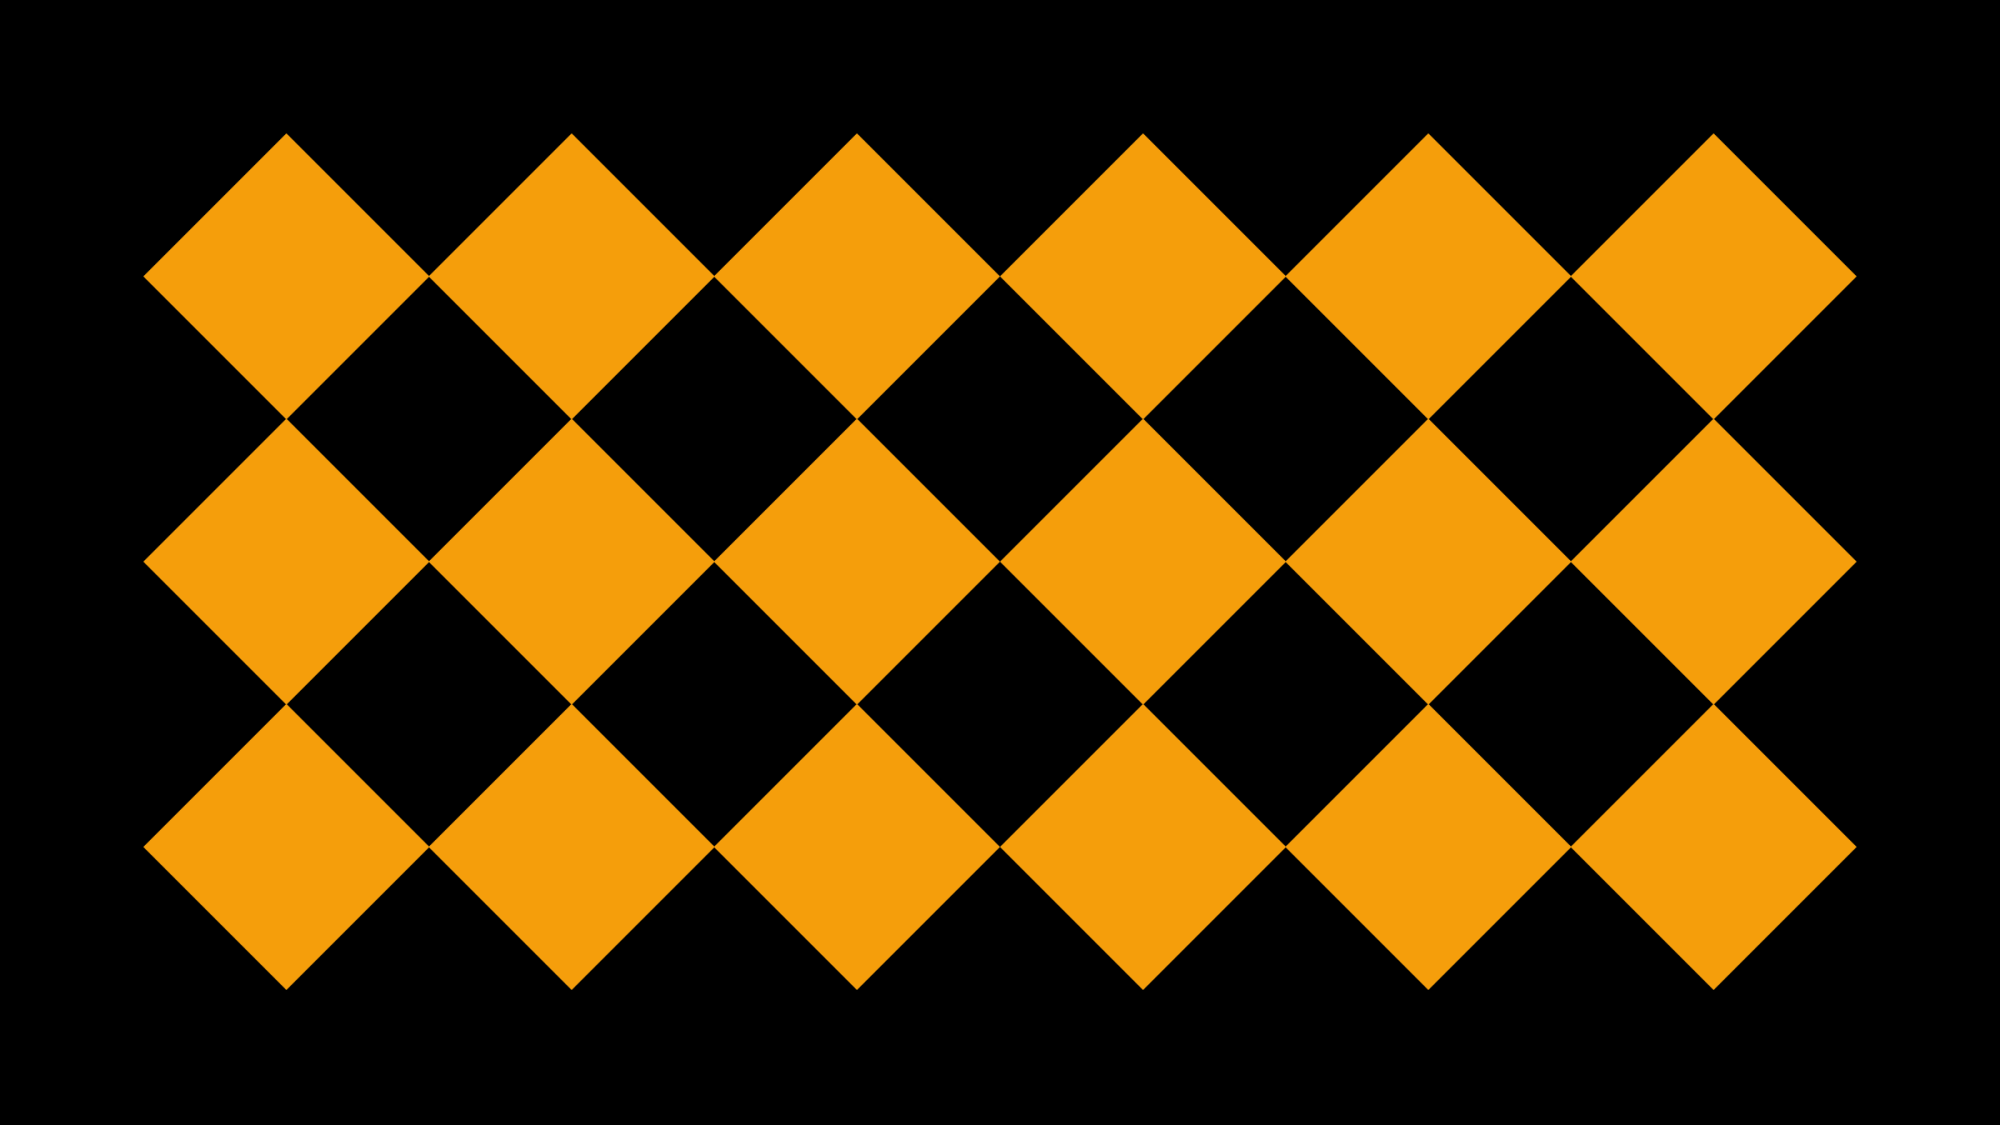 2b4c6b15-df49-11ea-a3d0-06b4694bee2a%2F1619263177042-Design+Principles+-+Repetition%402x.png